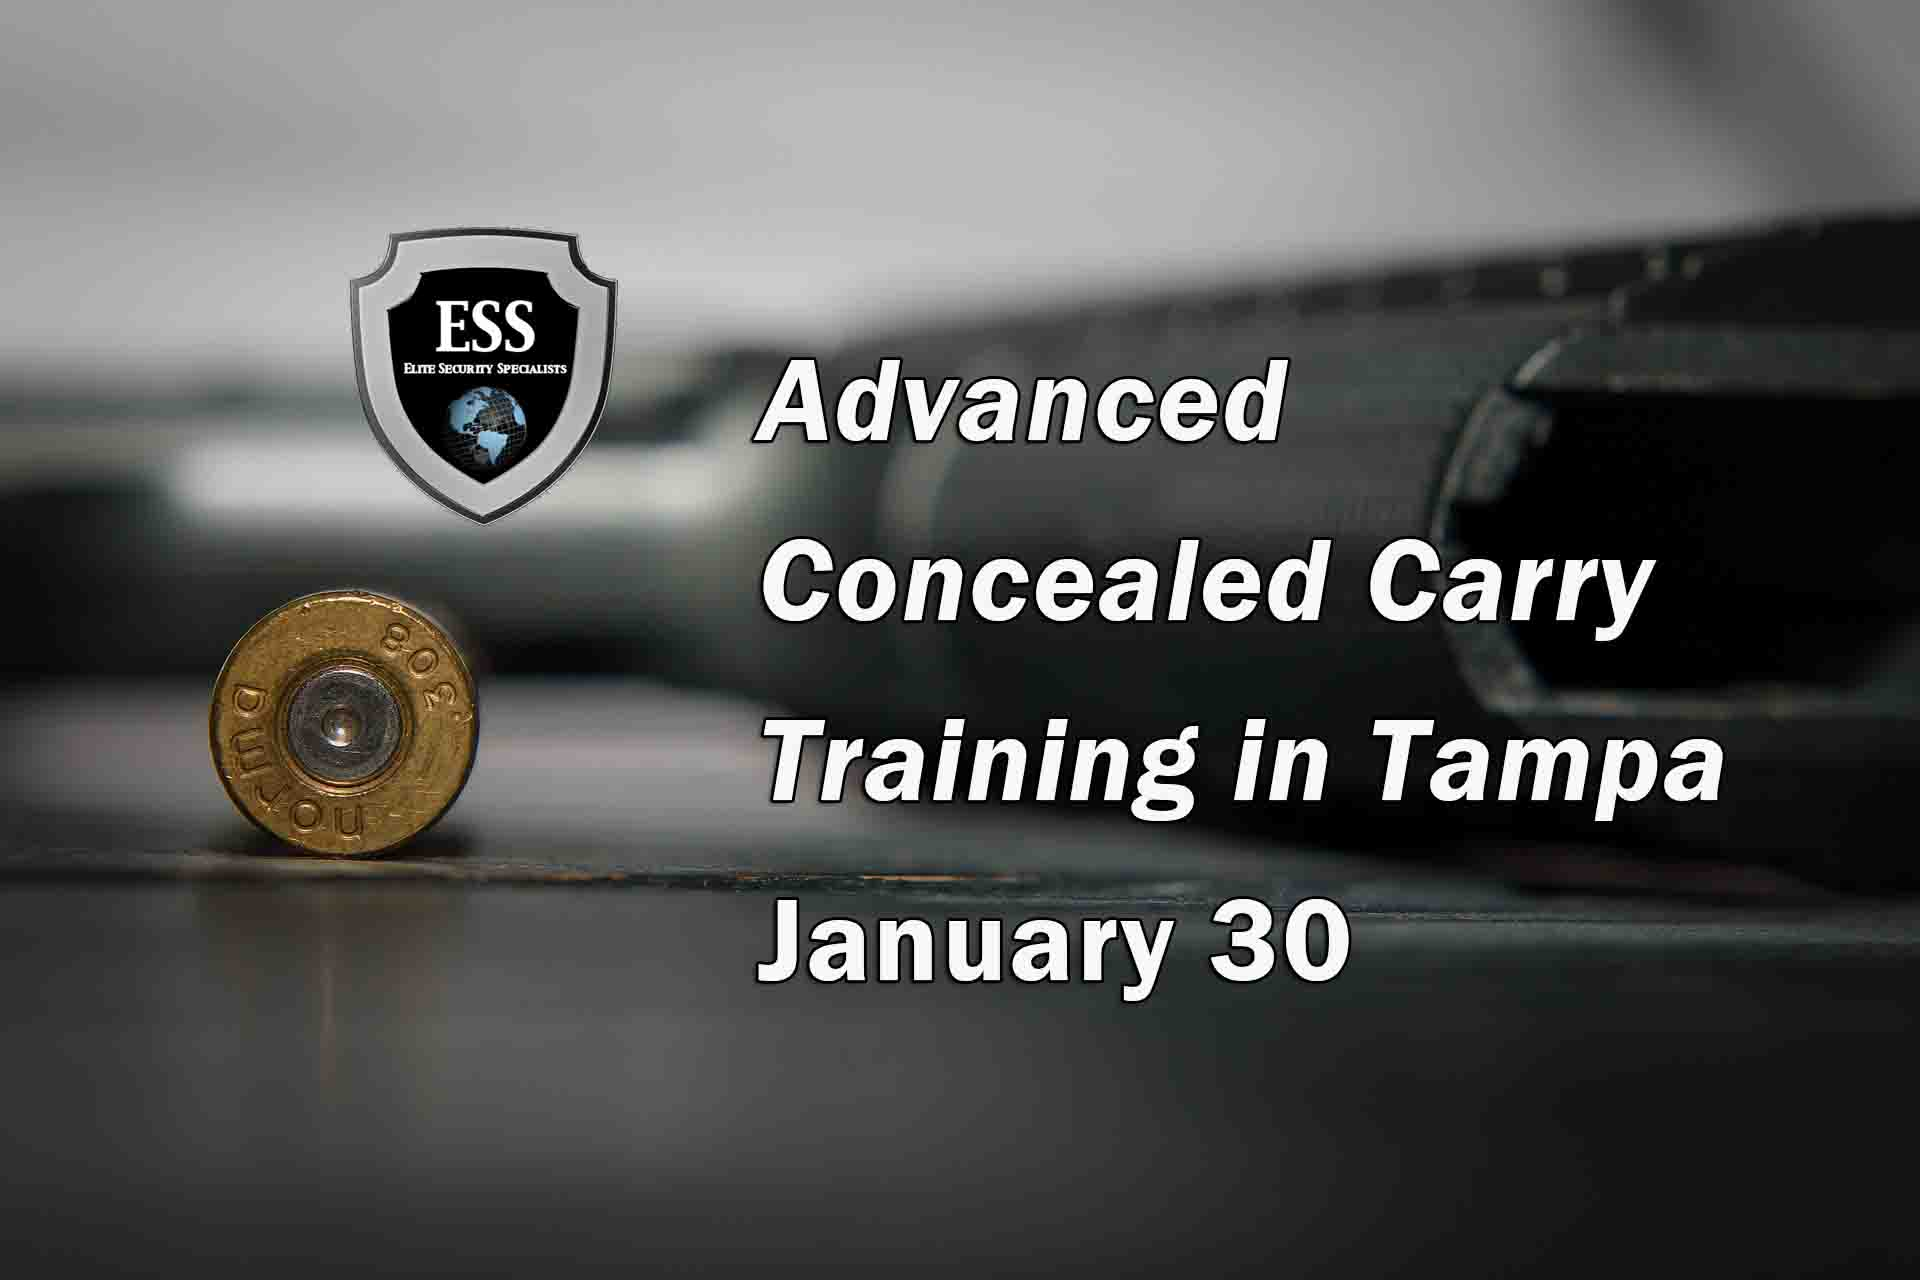 Advanced Concealed Carry Training in Tampa JAN